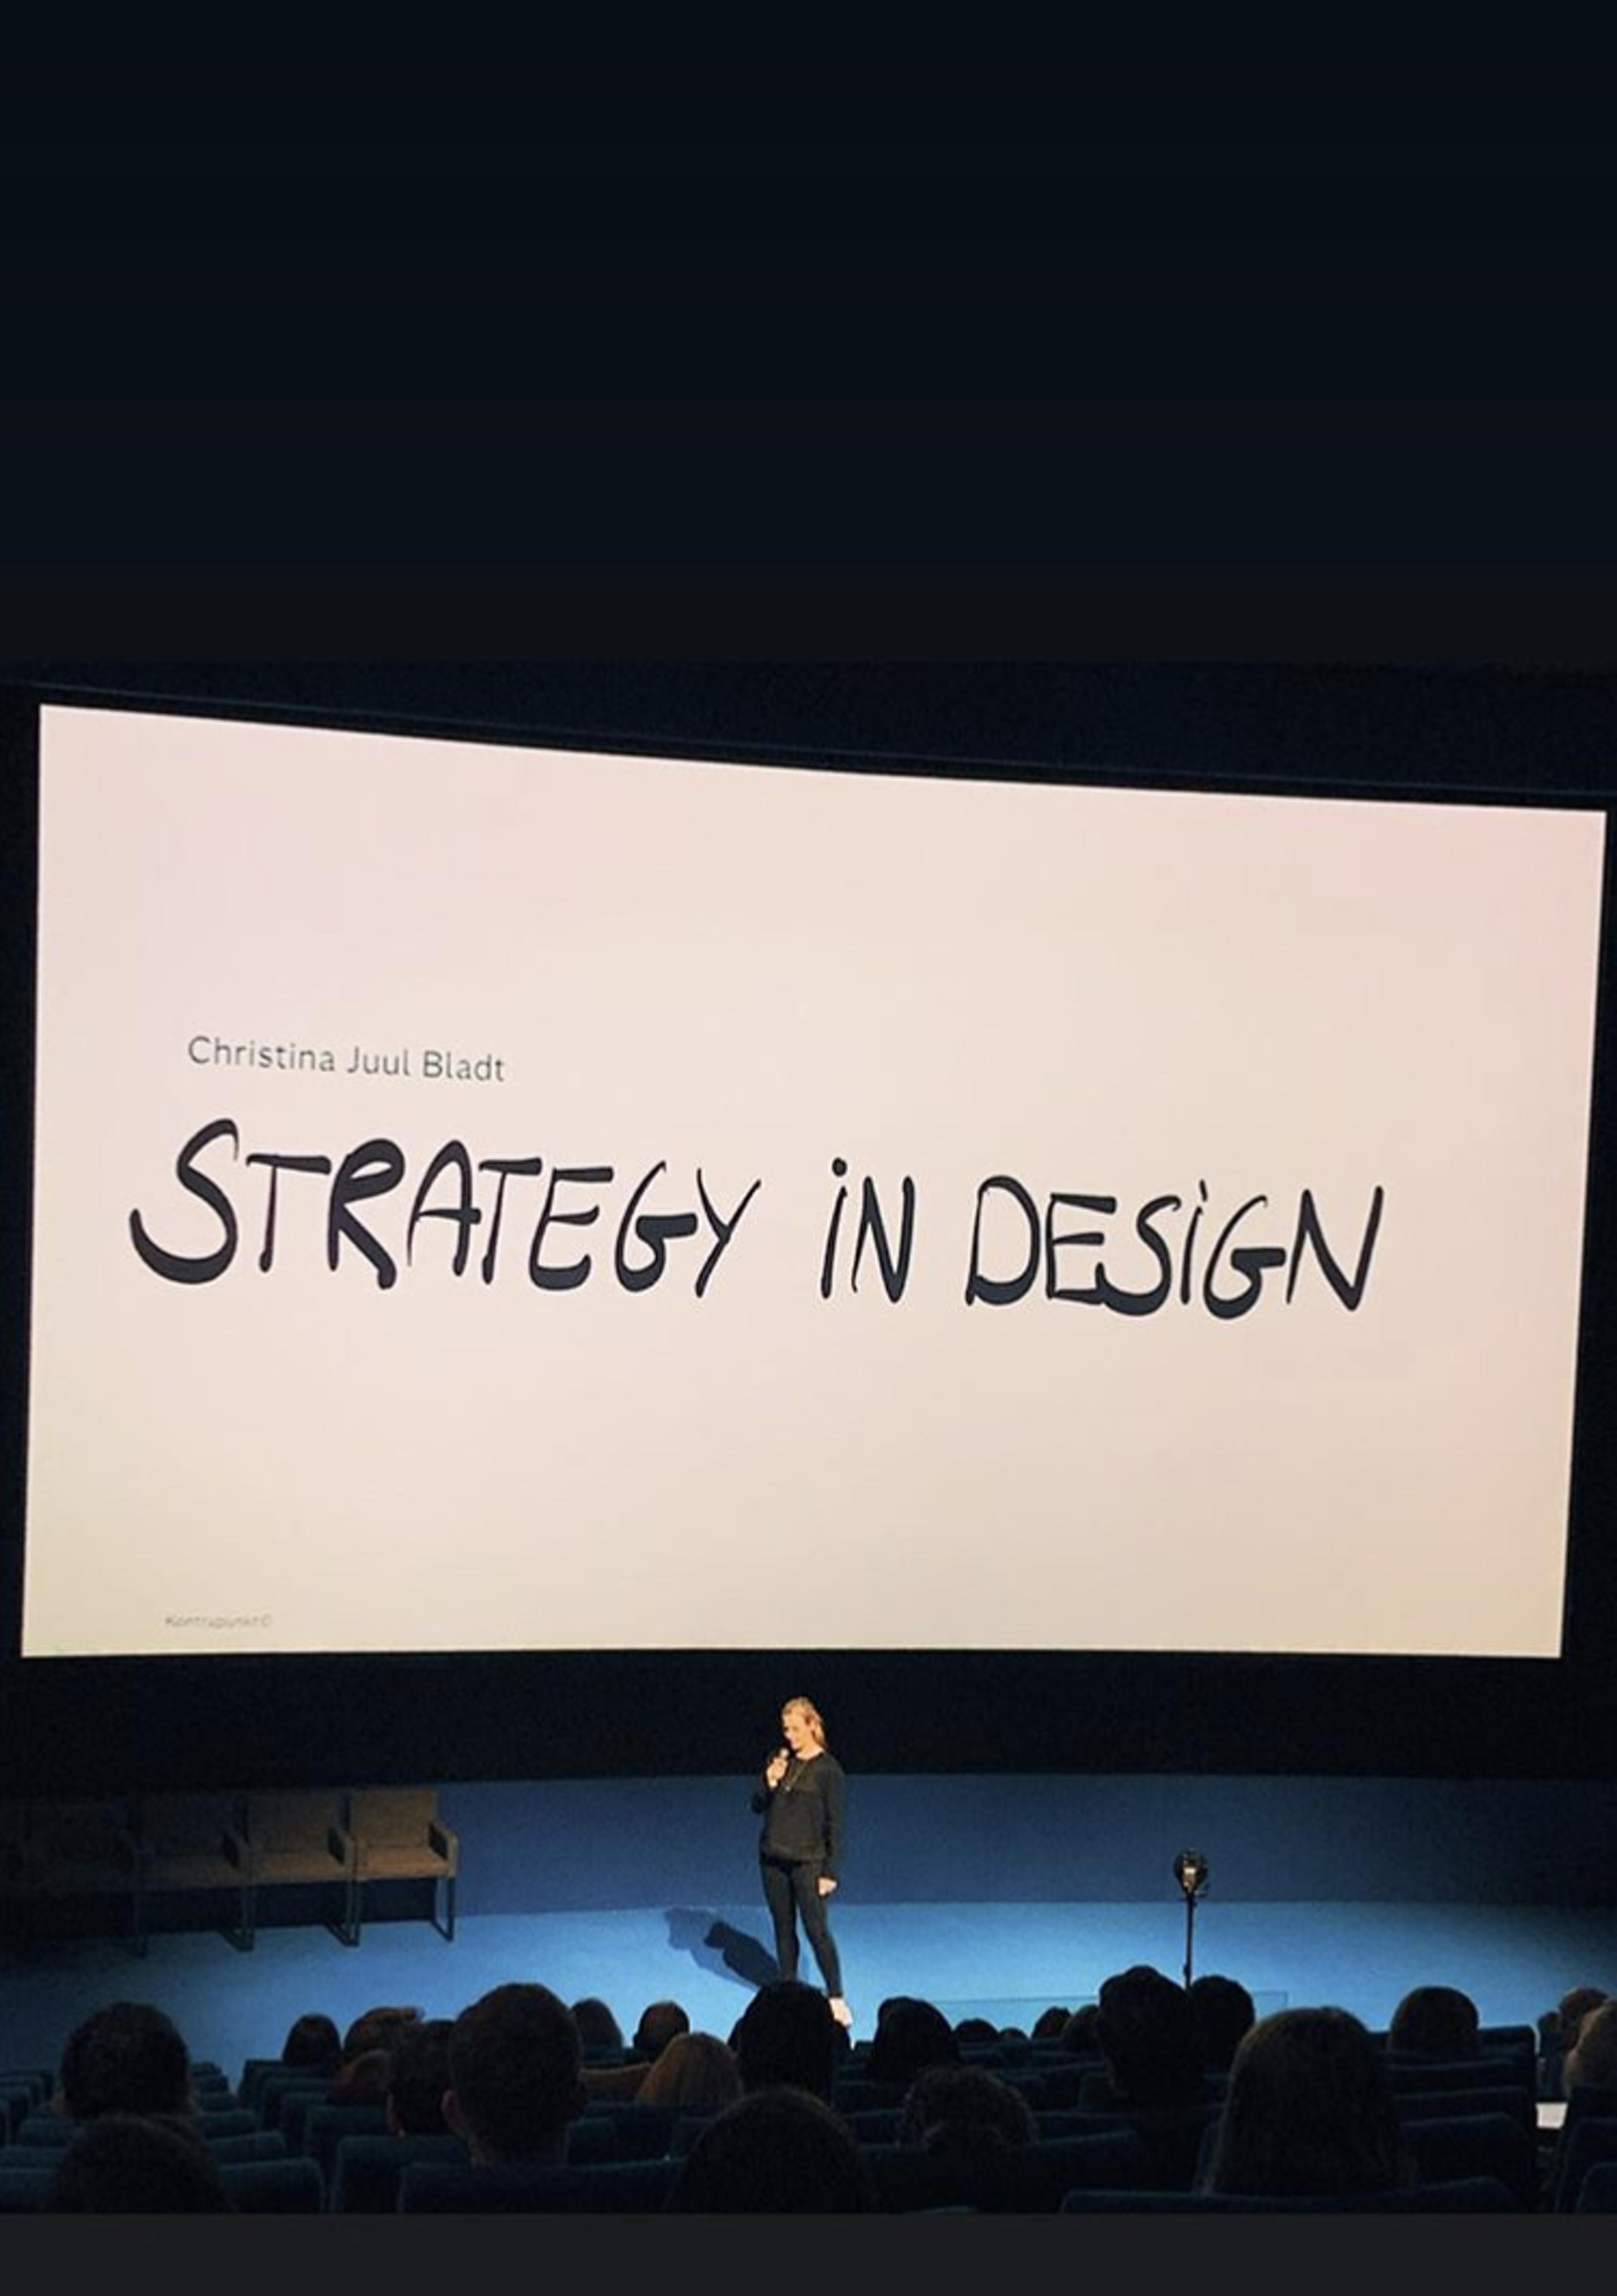 woman standing on conference stage with backdrop that says 'Strategy in Design'